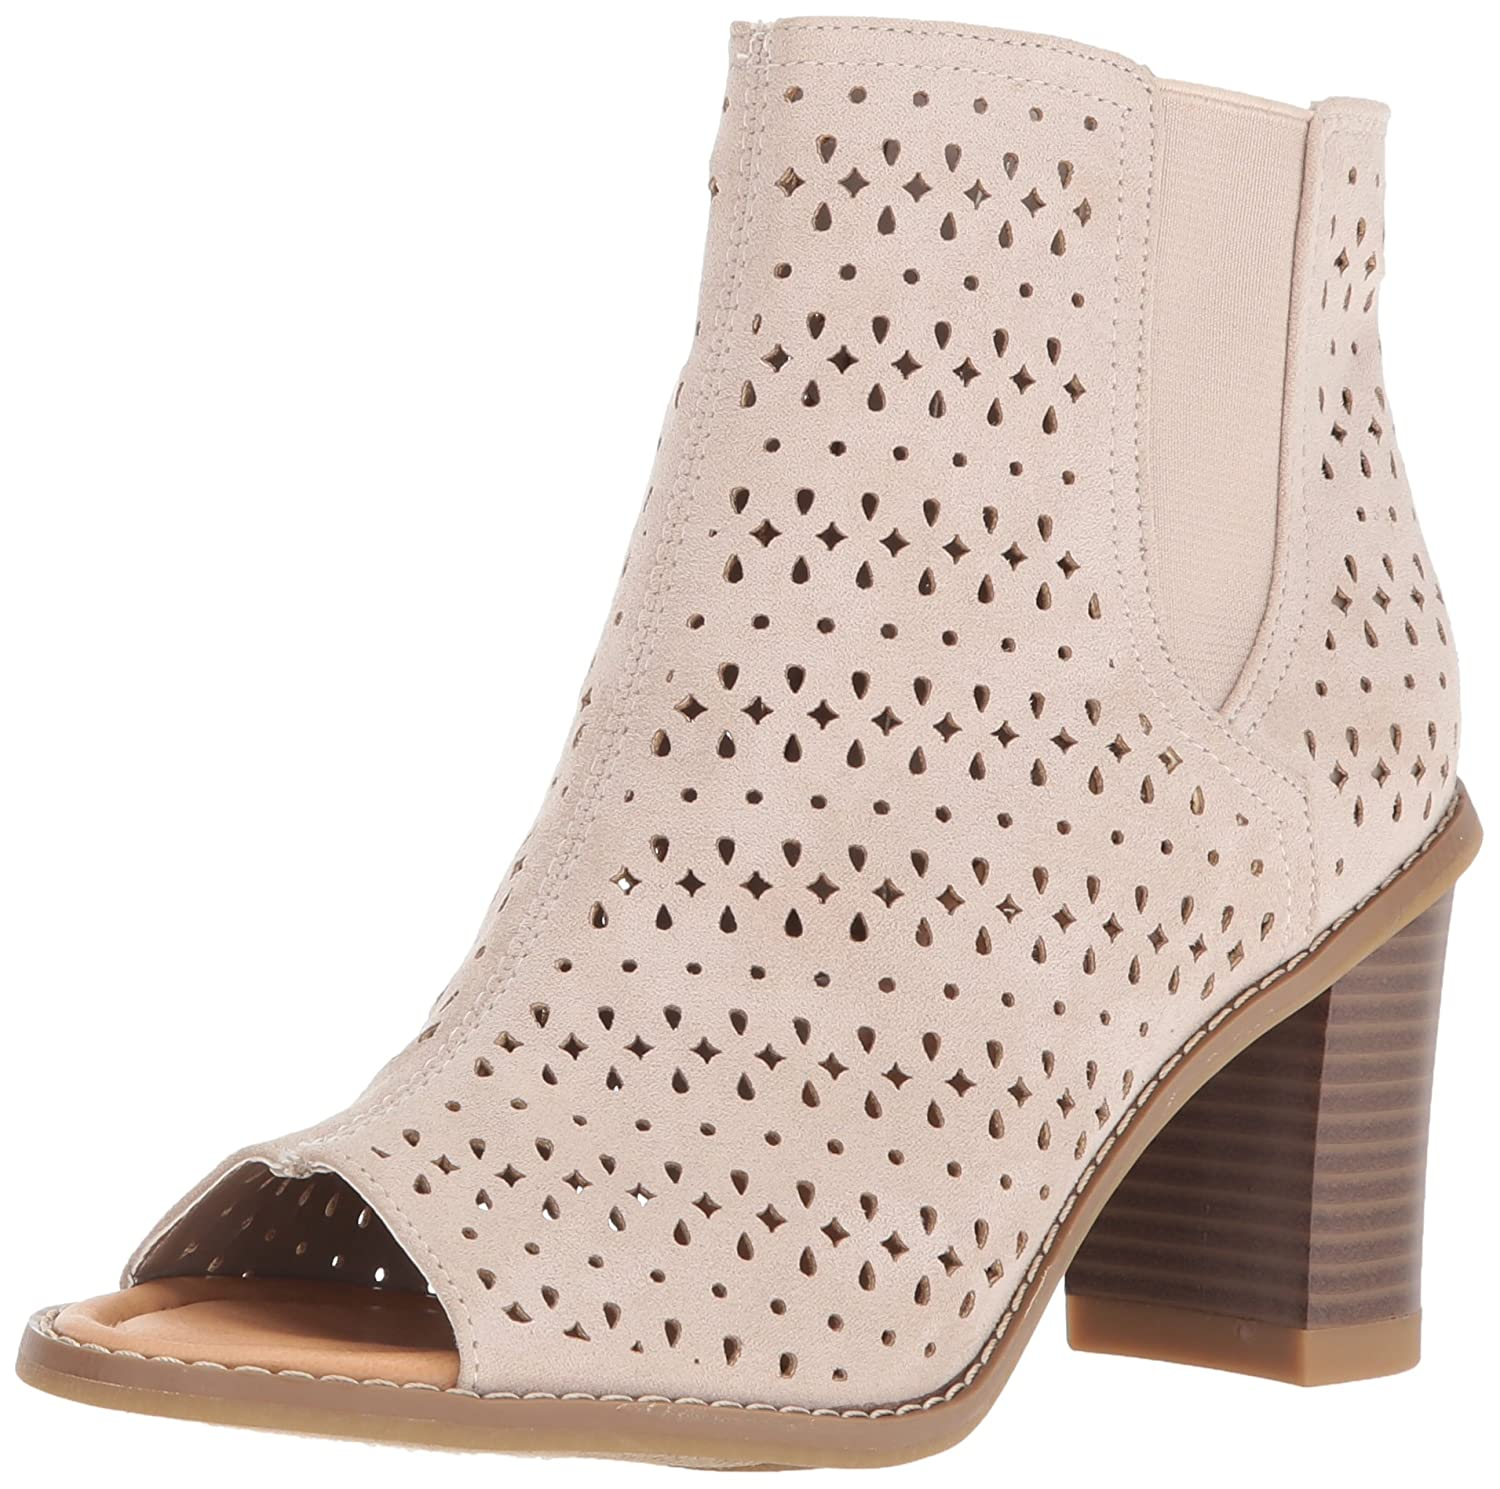 Dr. Scholl's Women's Peyton Ankle Bootie